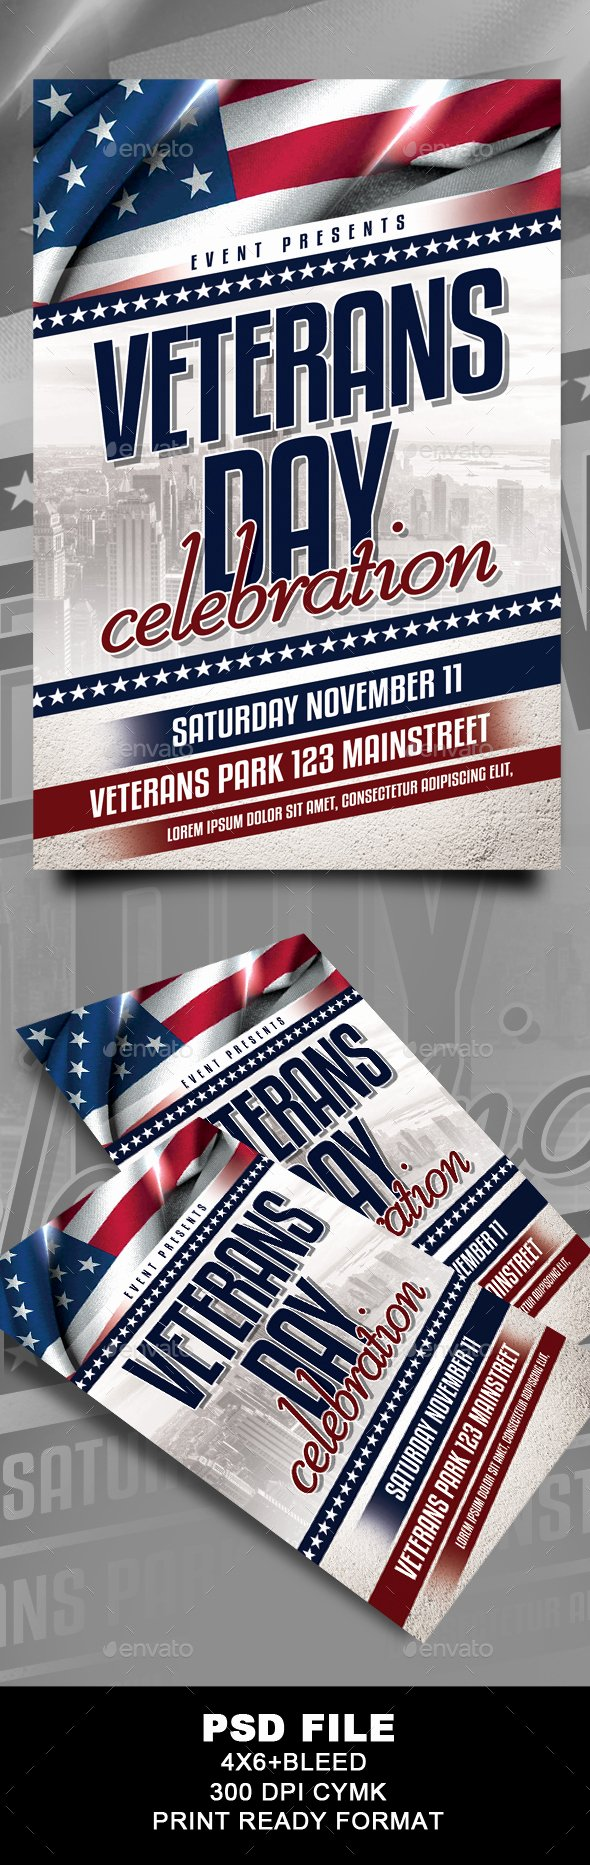 Veterans Day Flyer Template Free Awesome Veterans Day Flyer by G4yuma